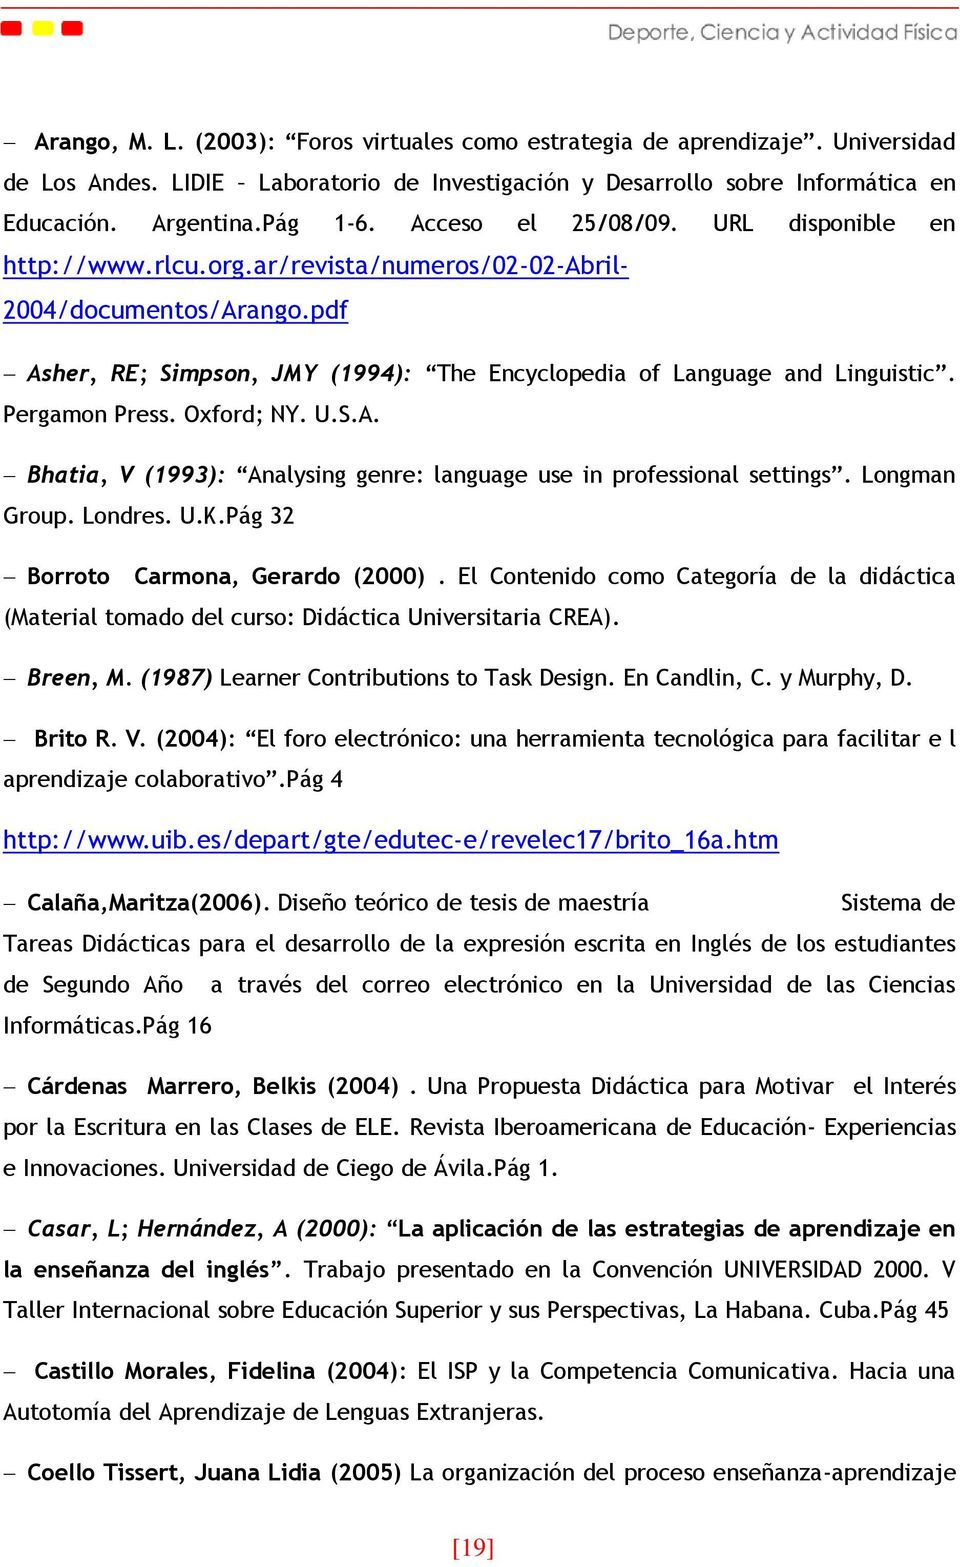 Pergamon Press. Oxford; NY. U.S.A. Bhatia, V (1993): Analysing genre: language use in professional settings. Longman Group. Londres. U.K.Pág 32 Borroto Carmona, Gerardo (2000).